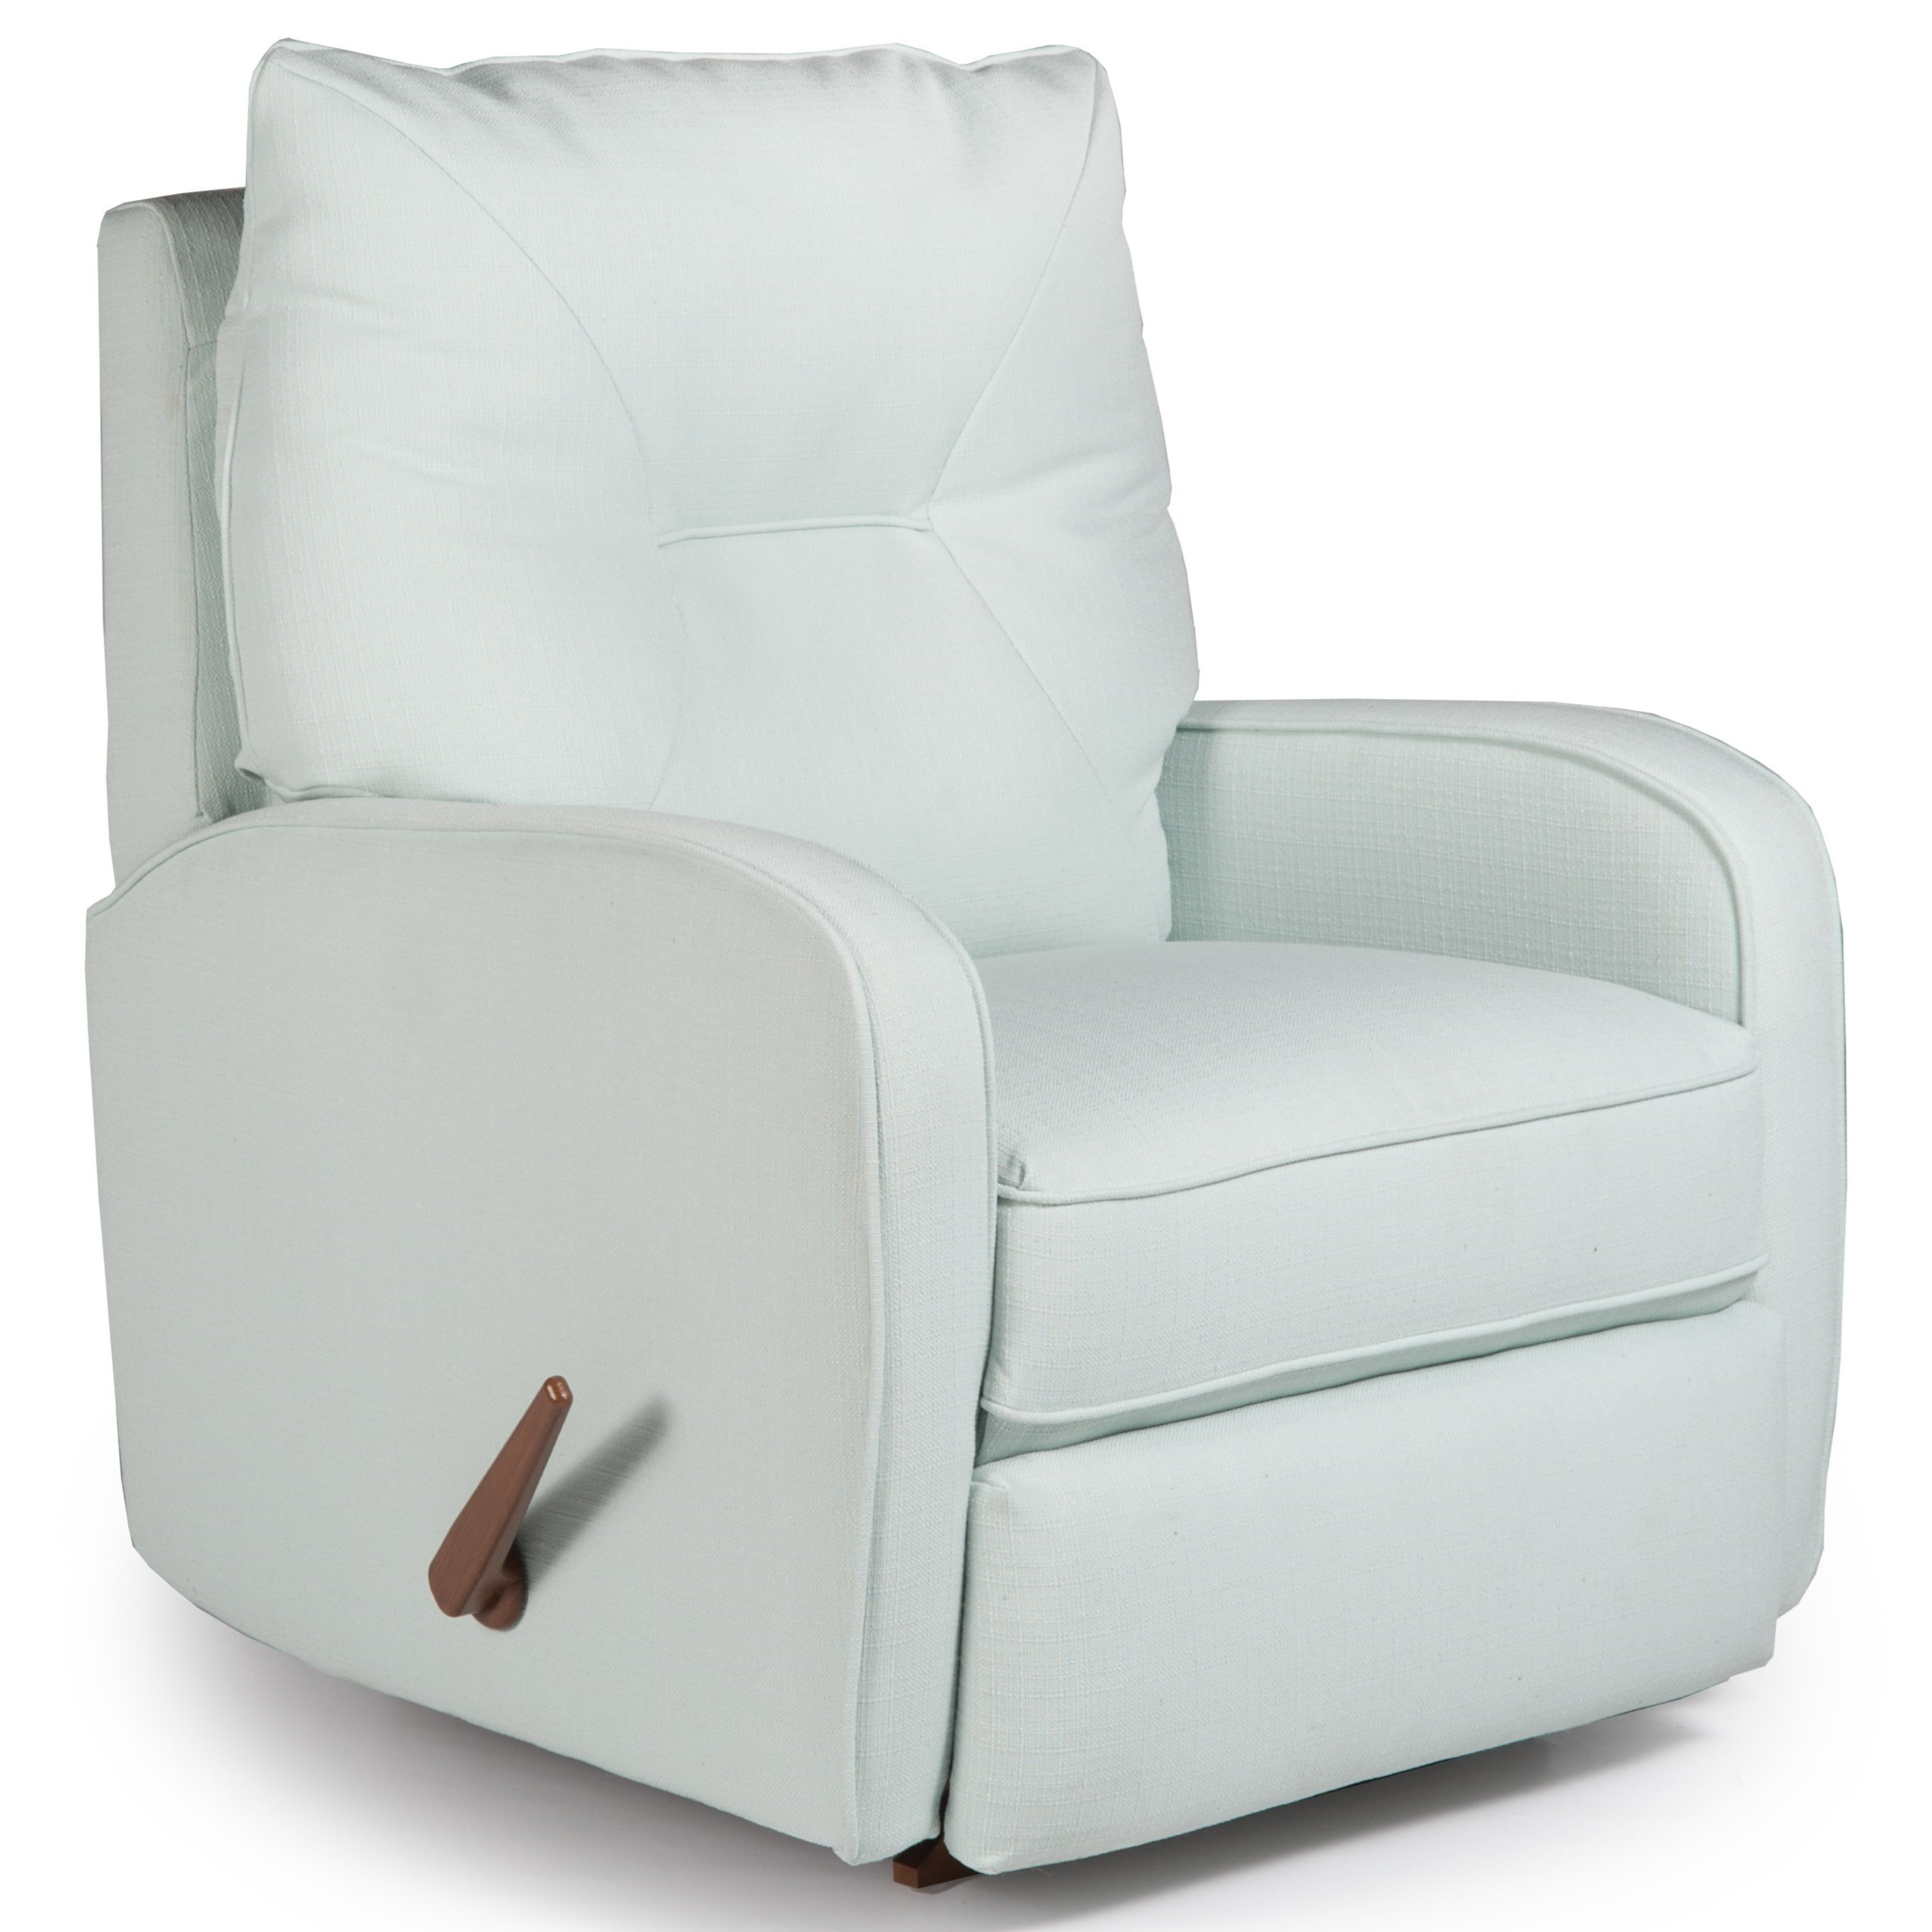 Medium Recliners Ingall Rocker Recliner by Best Home Furnishings at Turk Furniture